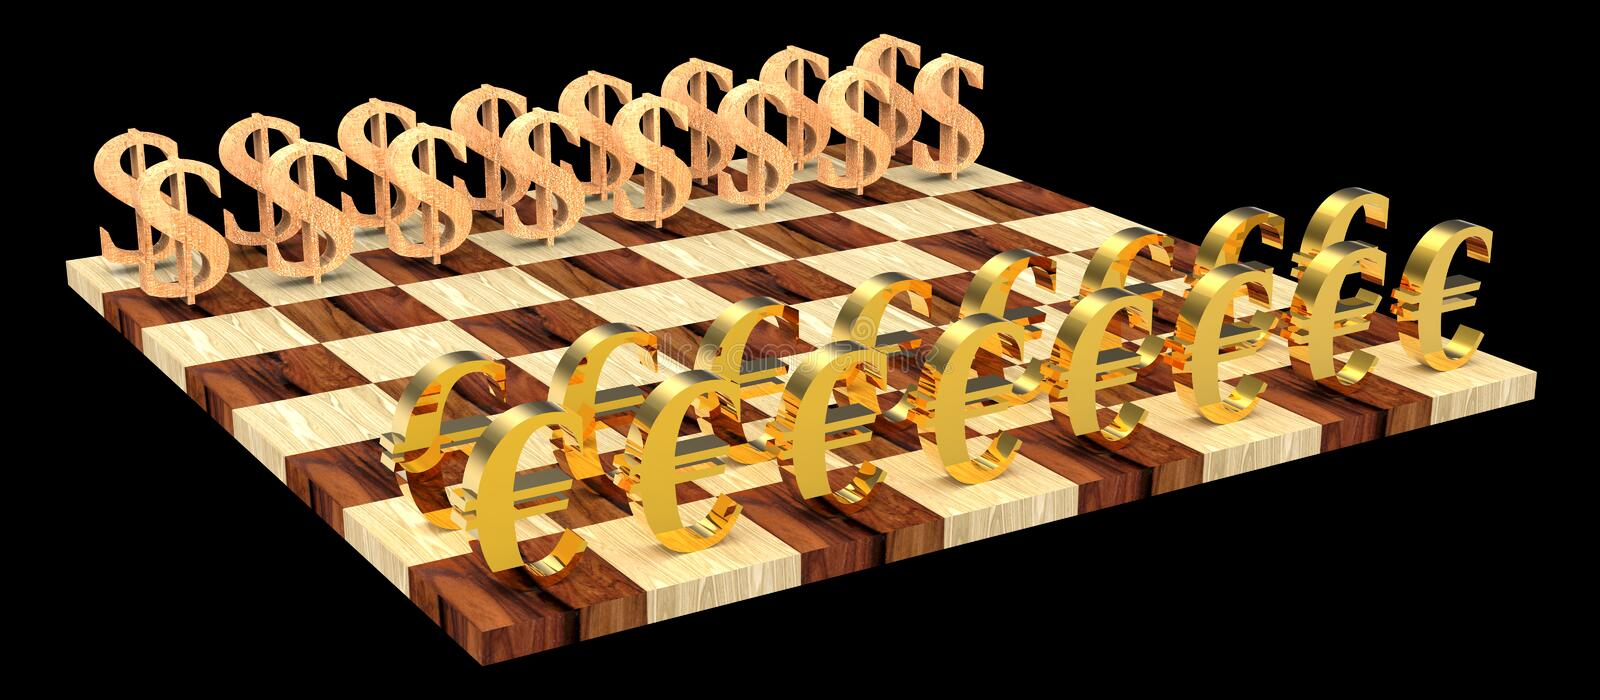 3D chess royalty free stock image